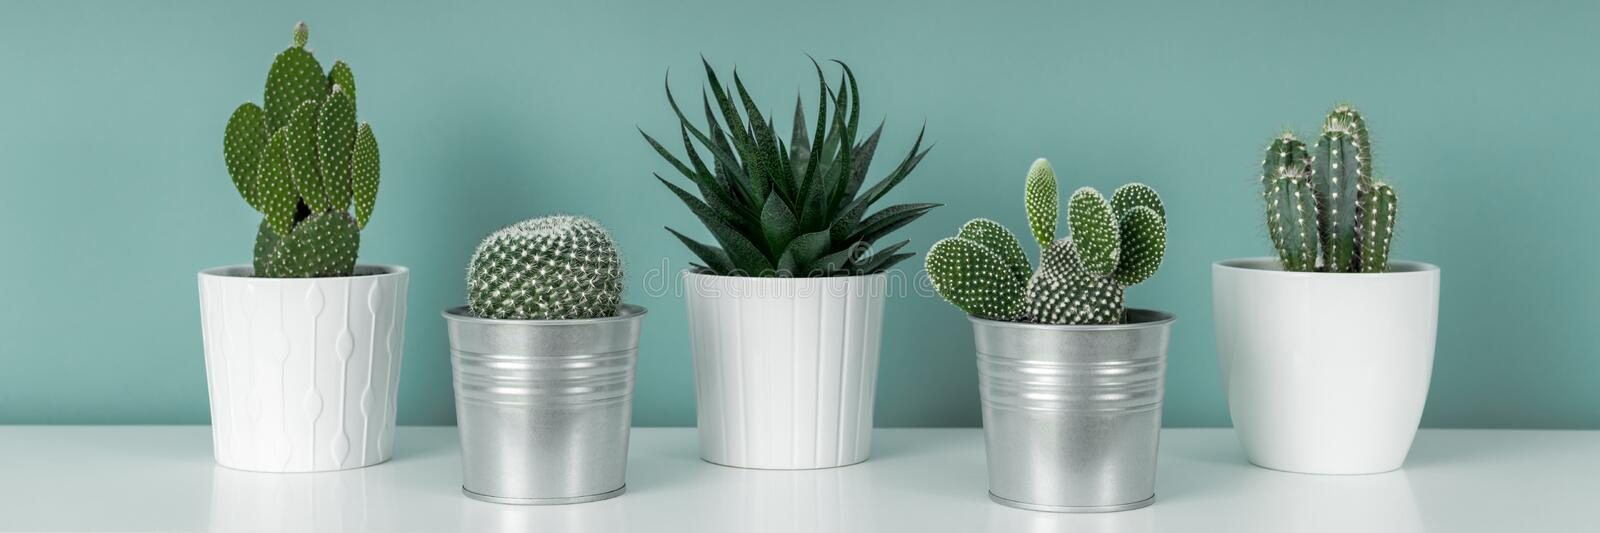 Collection of various potted cactus house plants on white shelf against pastel turquoise colored wall. Cactus plants banner. Modern room decoration. Collection royalty free stock images